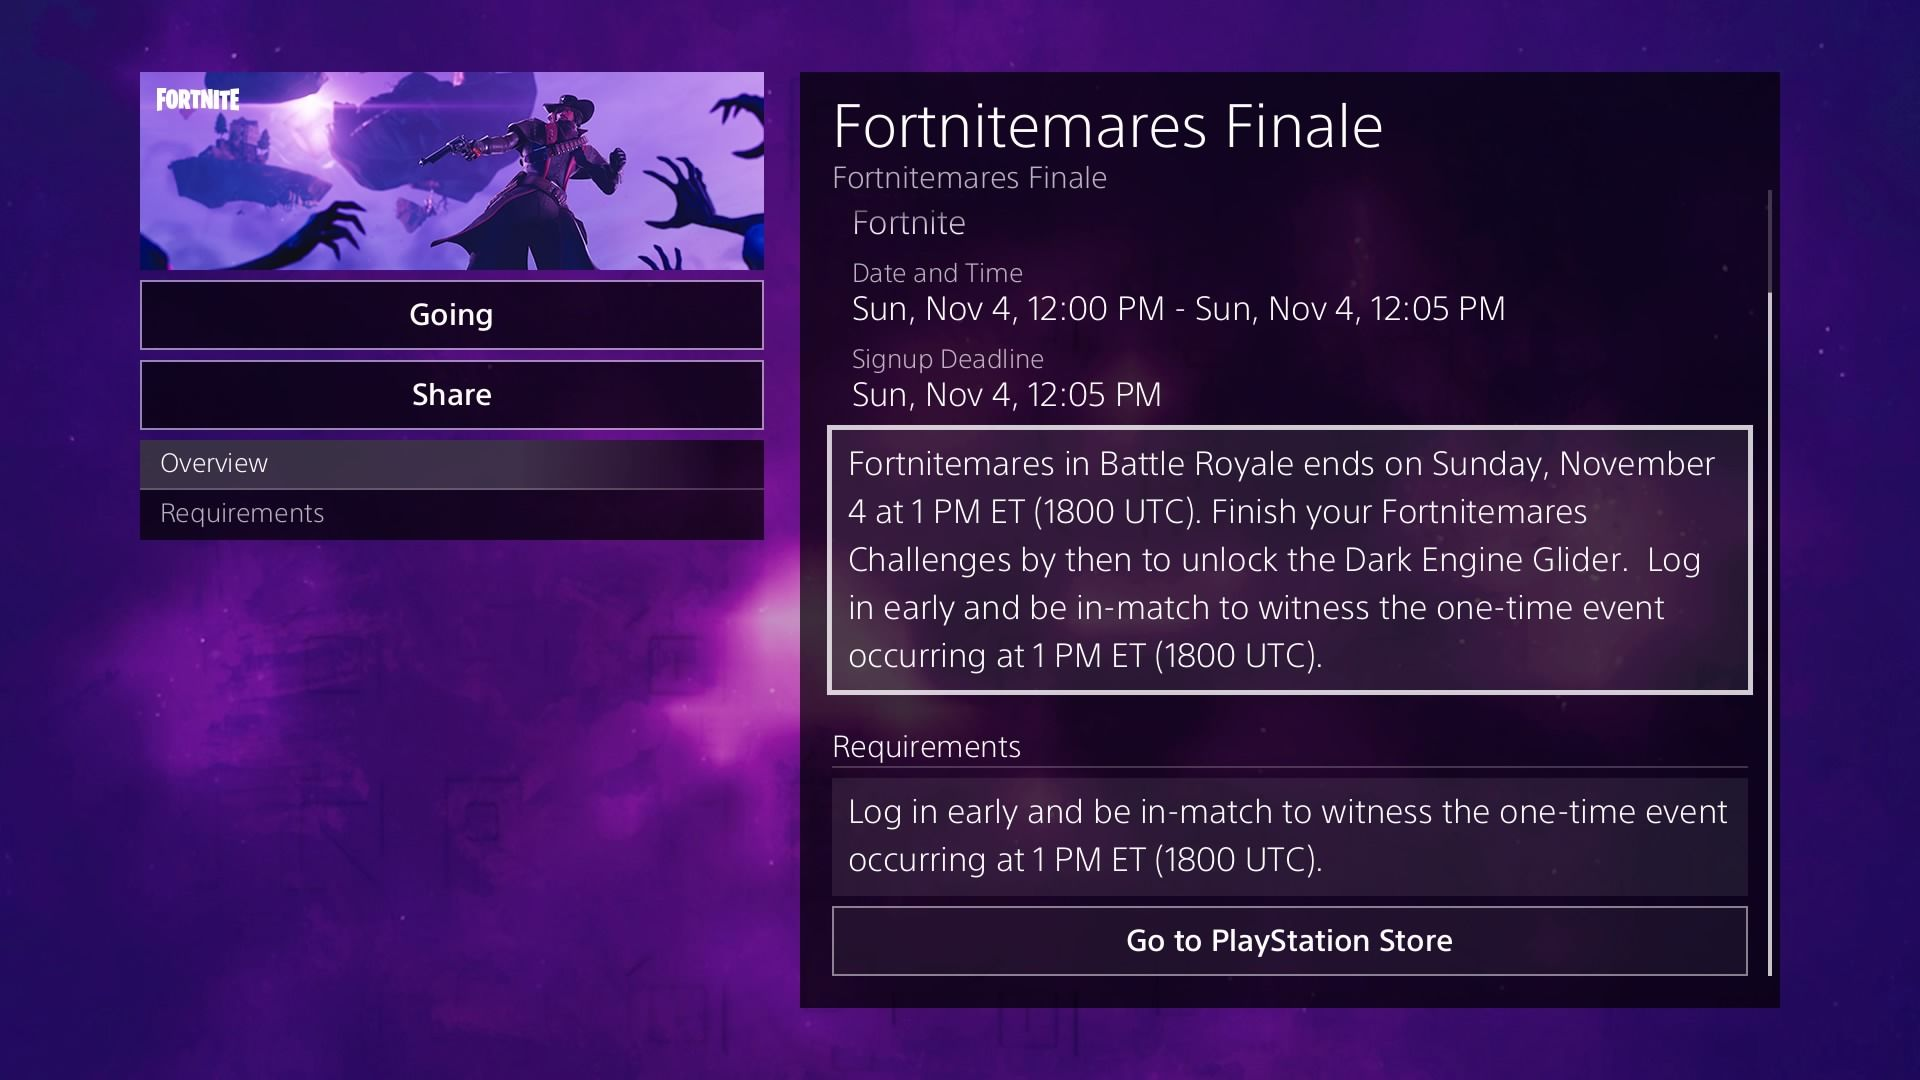 Fortnite Fortnitemares Finale Butterfly Event Tomorrow Start Time - fortnitemares finale event